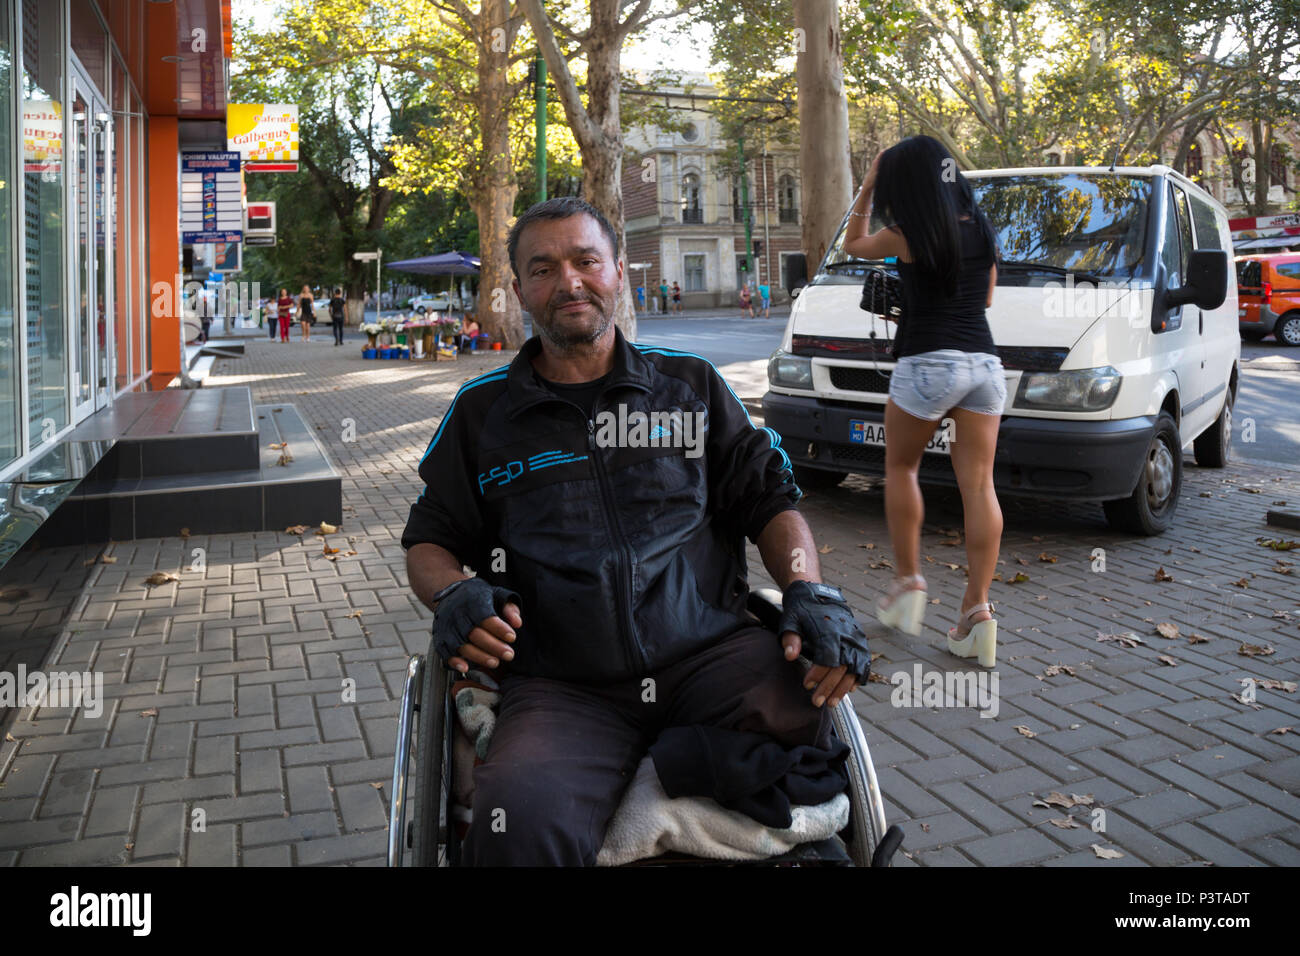 Moldova, Chisinau - Impoverished invalid in wheelchair - Stock Image